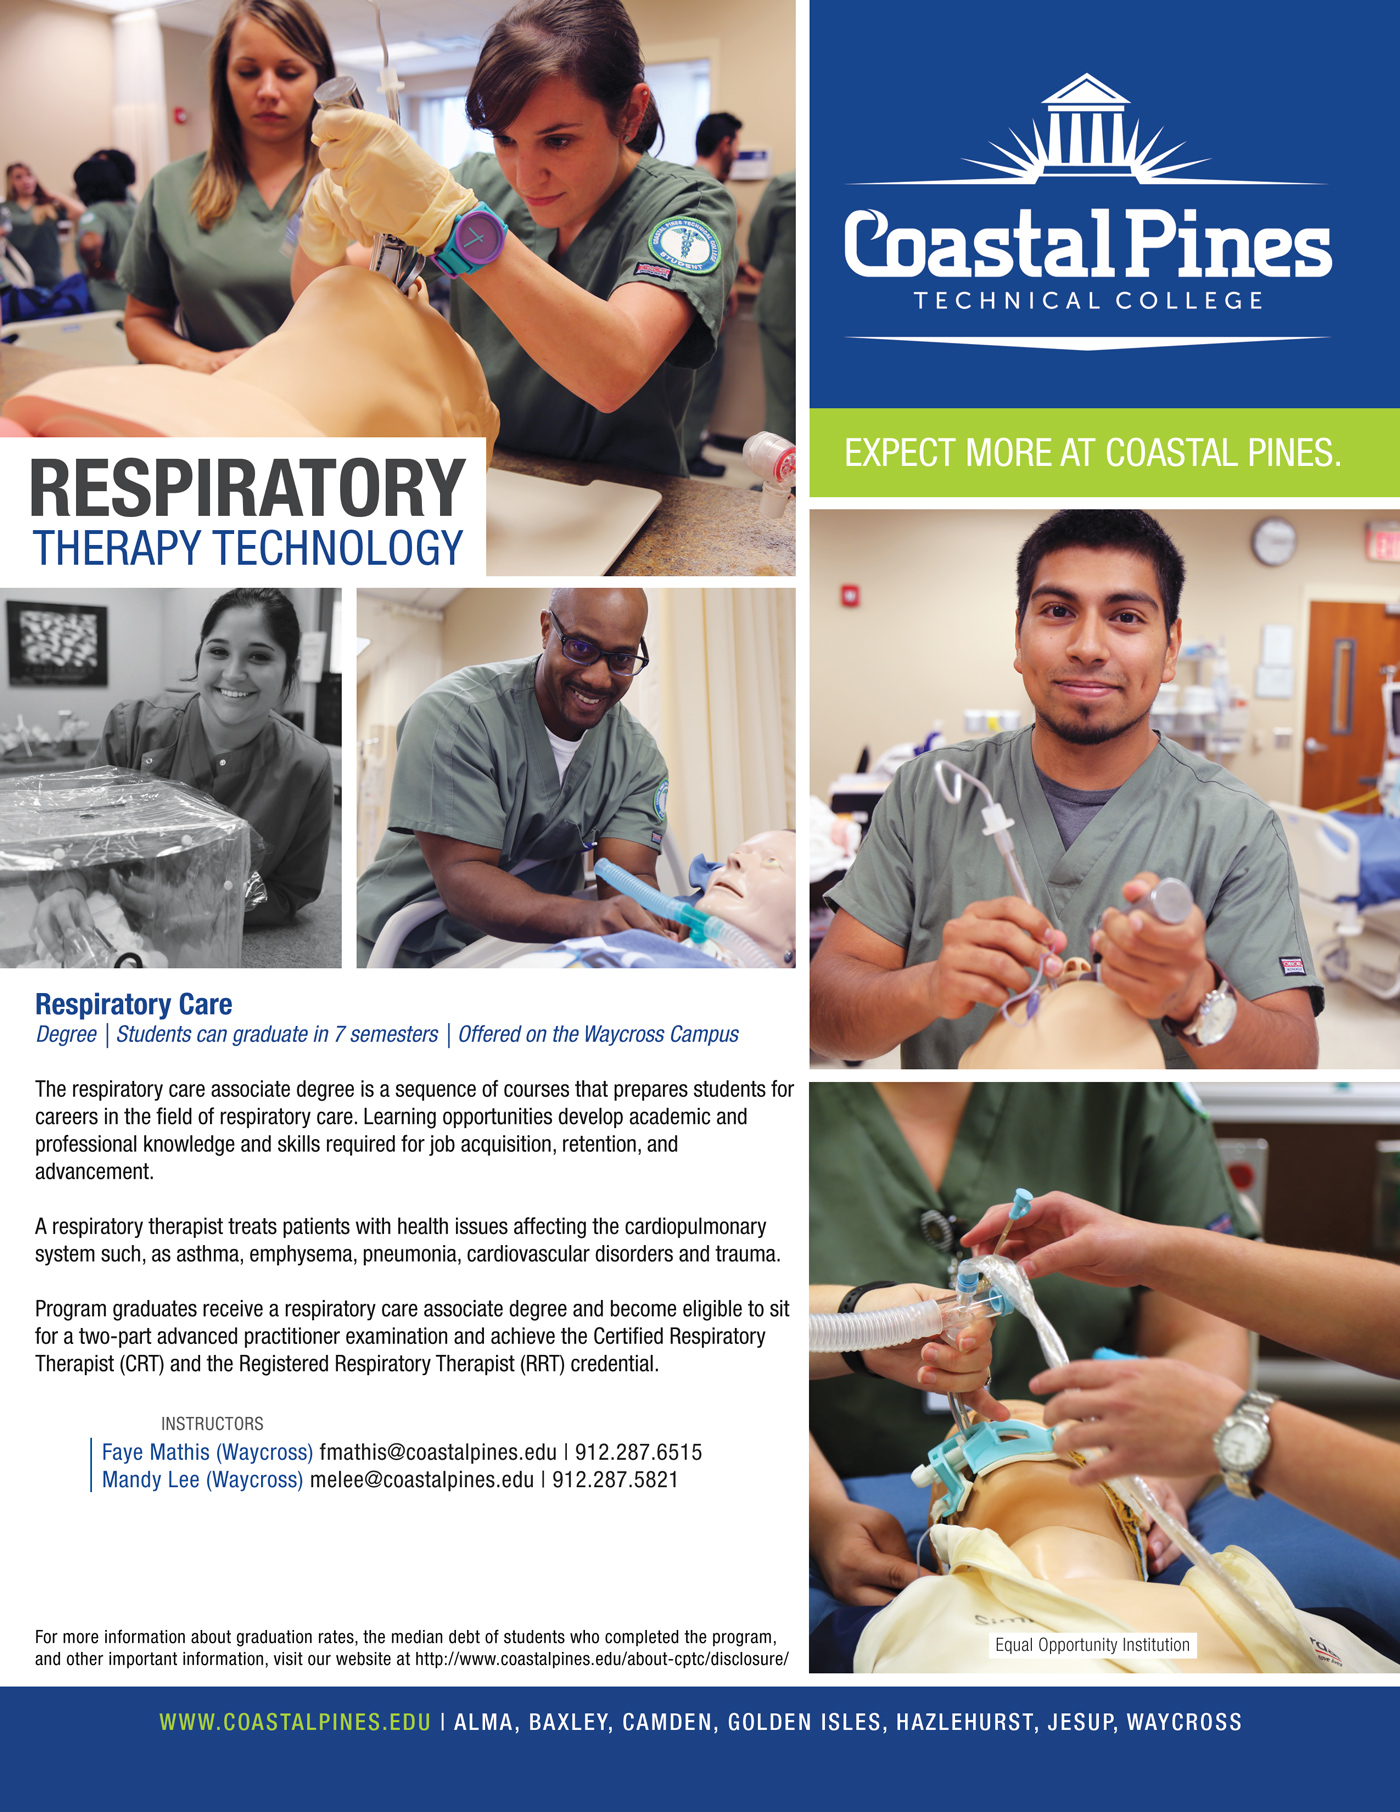 Poster for Respiratory Therapy Technology at Coastal Pines Technical College